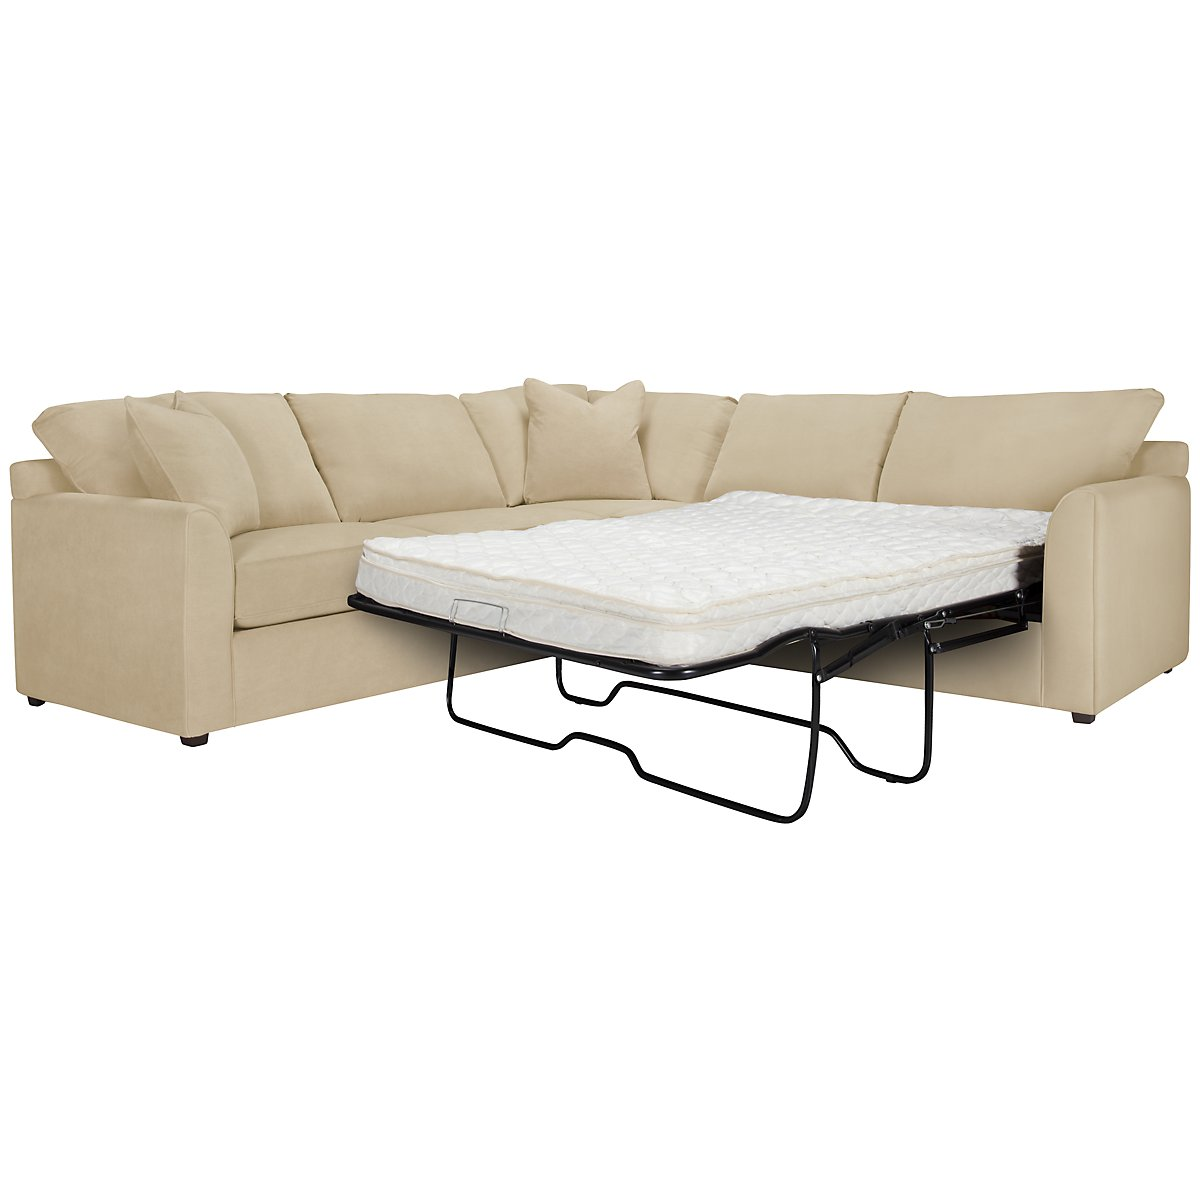 Express3 Lt Beige Microfiber Two-Arm Right Innerspring Sleeper Sectional